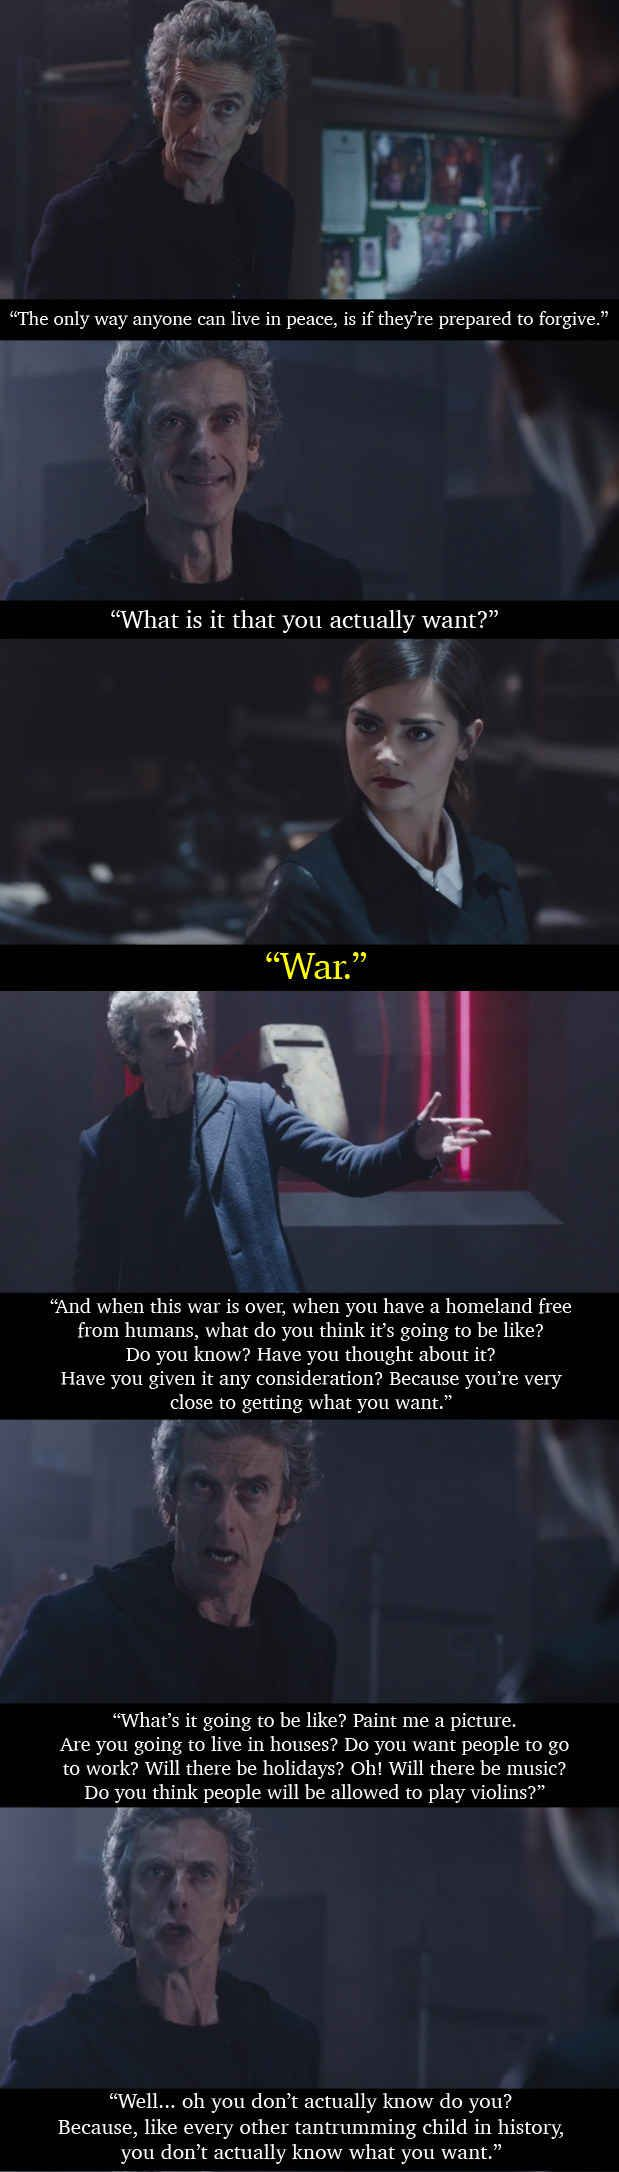 In the latest episode of Doctor Who​​, the Doctor was faced with a breakdown in the ceasefire between humans and the extremist faction of an alien race that has been living secretly on Earth. He then came out with a speech that sums up all wars.